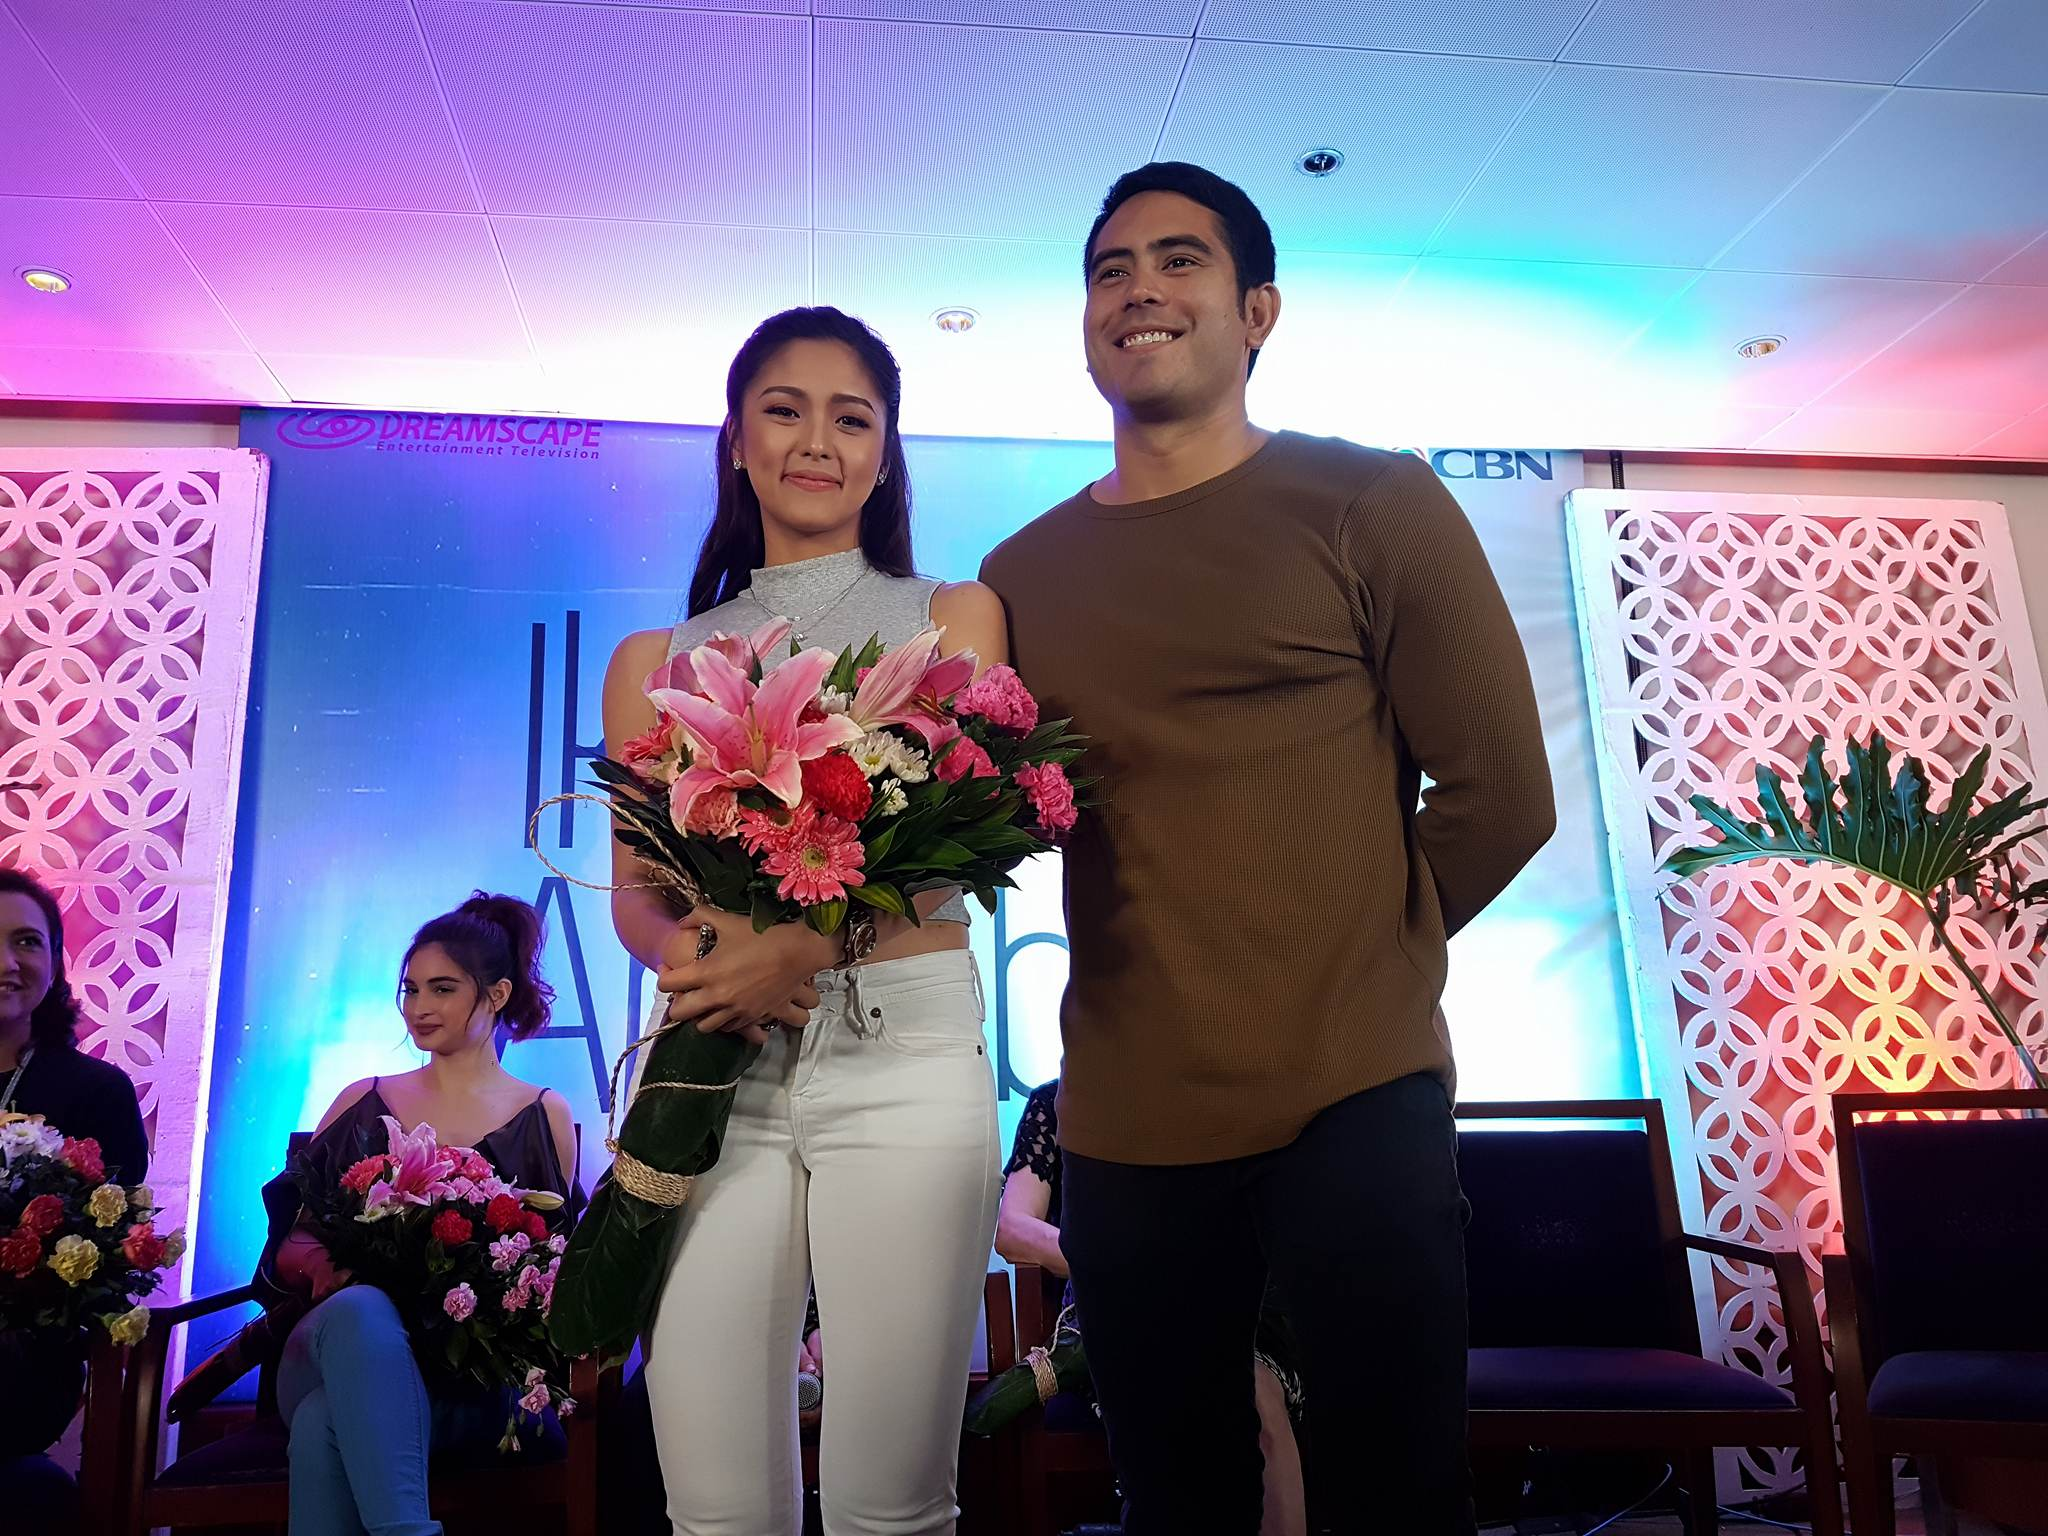 'Kimerald' wedding trends on Twitter